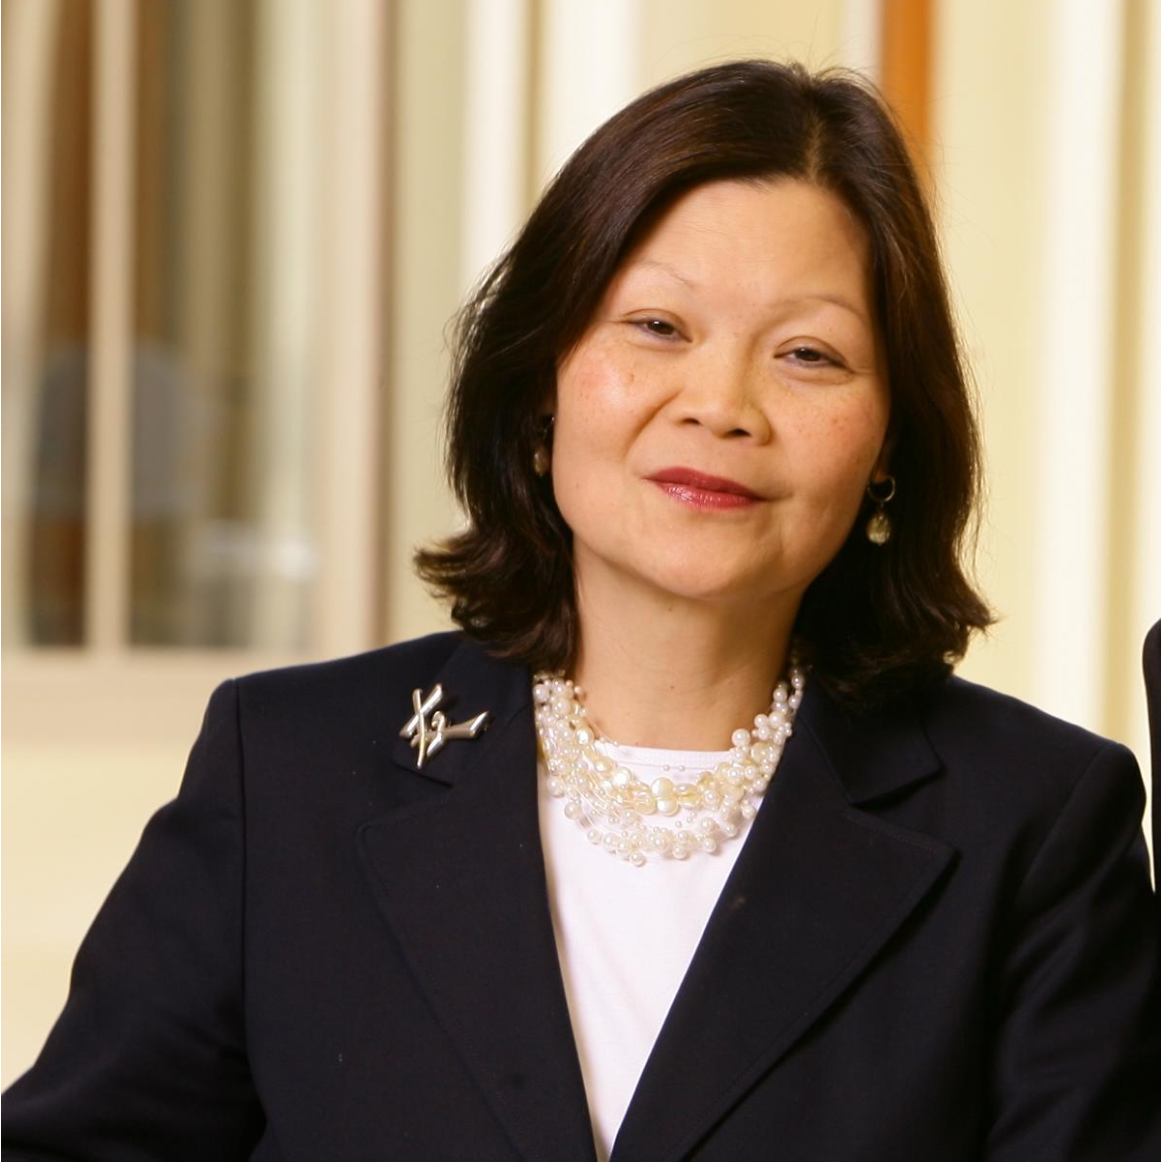 Carolyn Woo, Former President and CEO, Catholic Relief Services